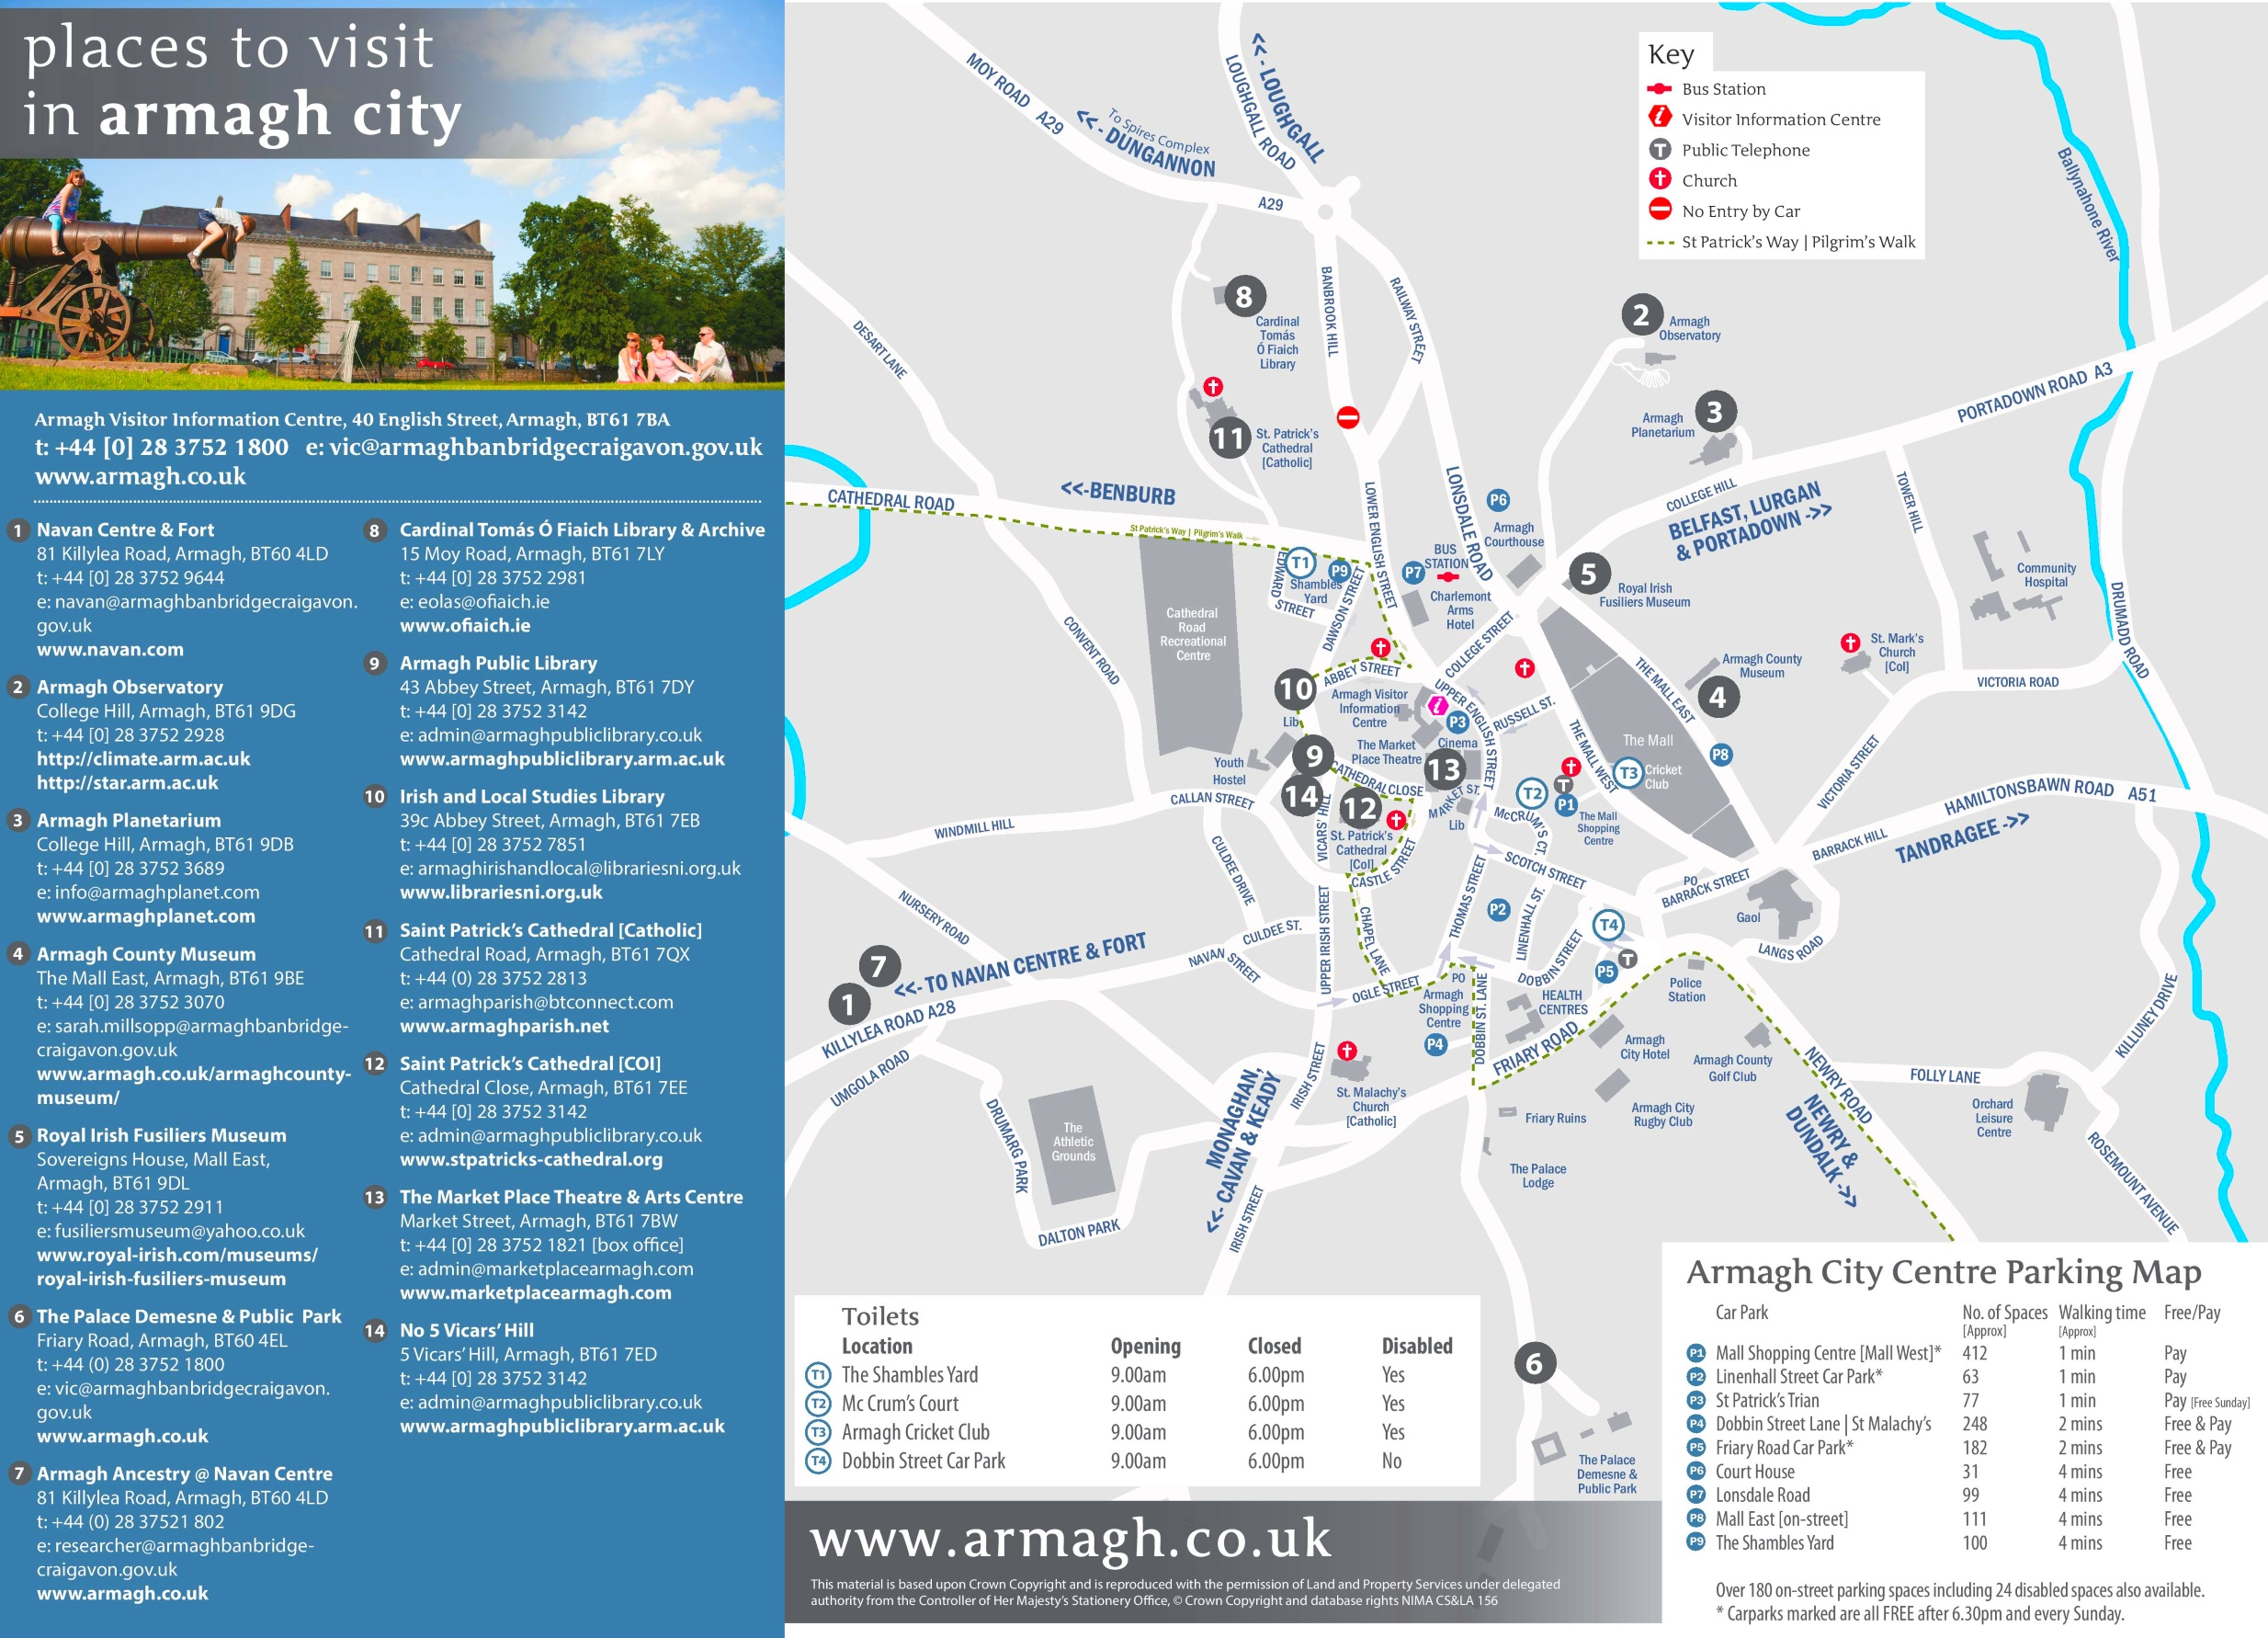 Armagh sightseeing map